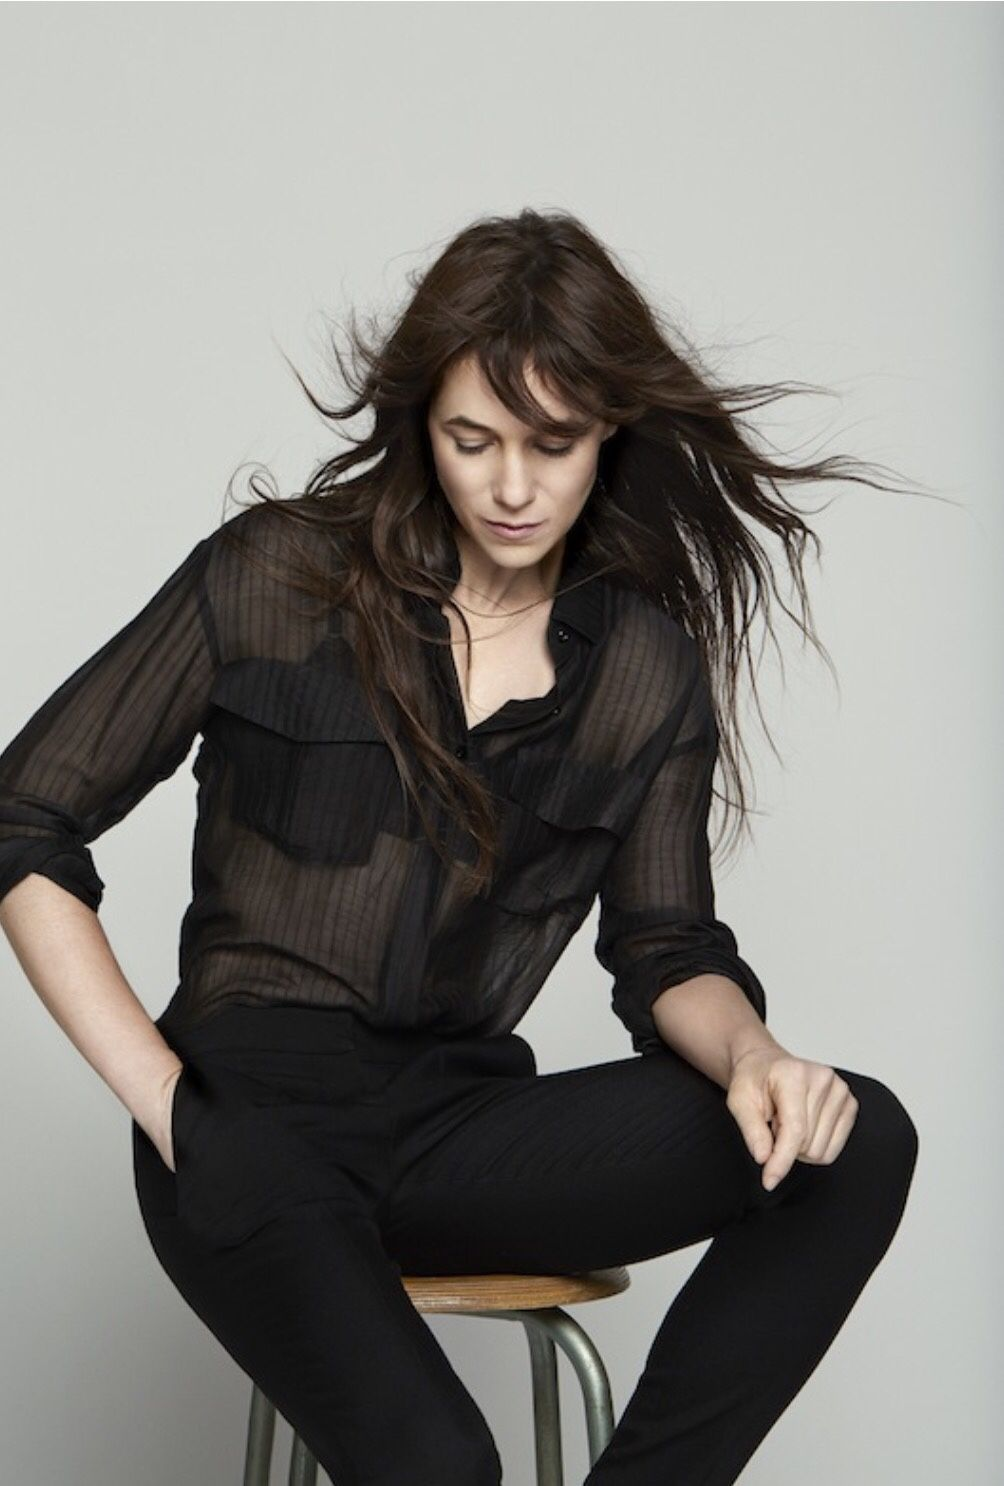 Celebrites Charlotte Gainsbourg nudes (66 foto and video), Sexy, Cleavage, Twitter, legs 2017